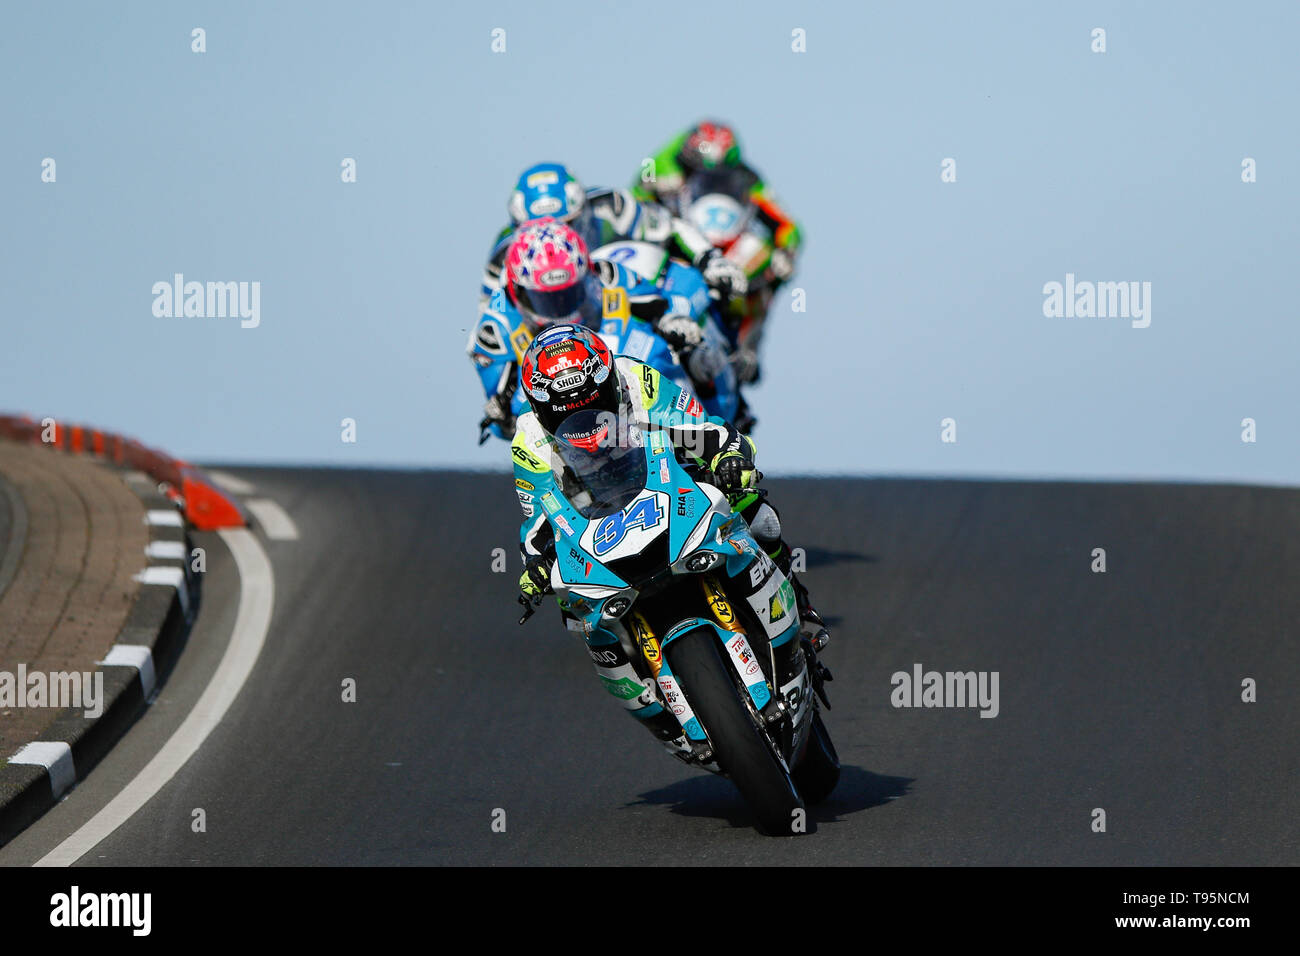 Portrush, Northern Ireland. 16th May, 2019. International North West 200 Motorcycle road racing, Thursday practice and evening racing; Alastair Seeley (EHA Racing Yamaha) led for much of the race Credit: Action Plus Sports/Alamy Live News - Stock Image